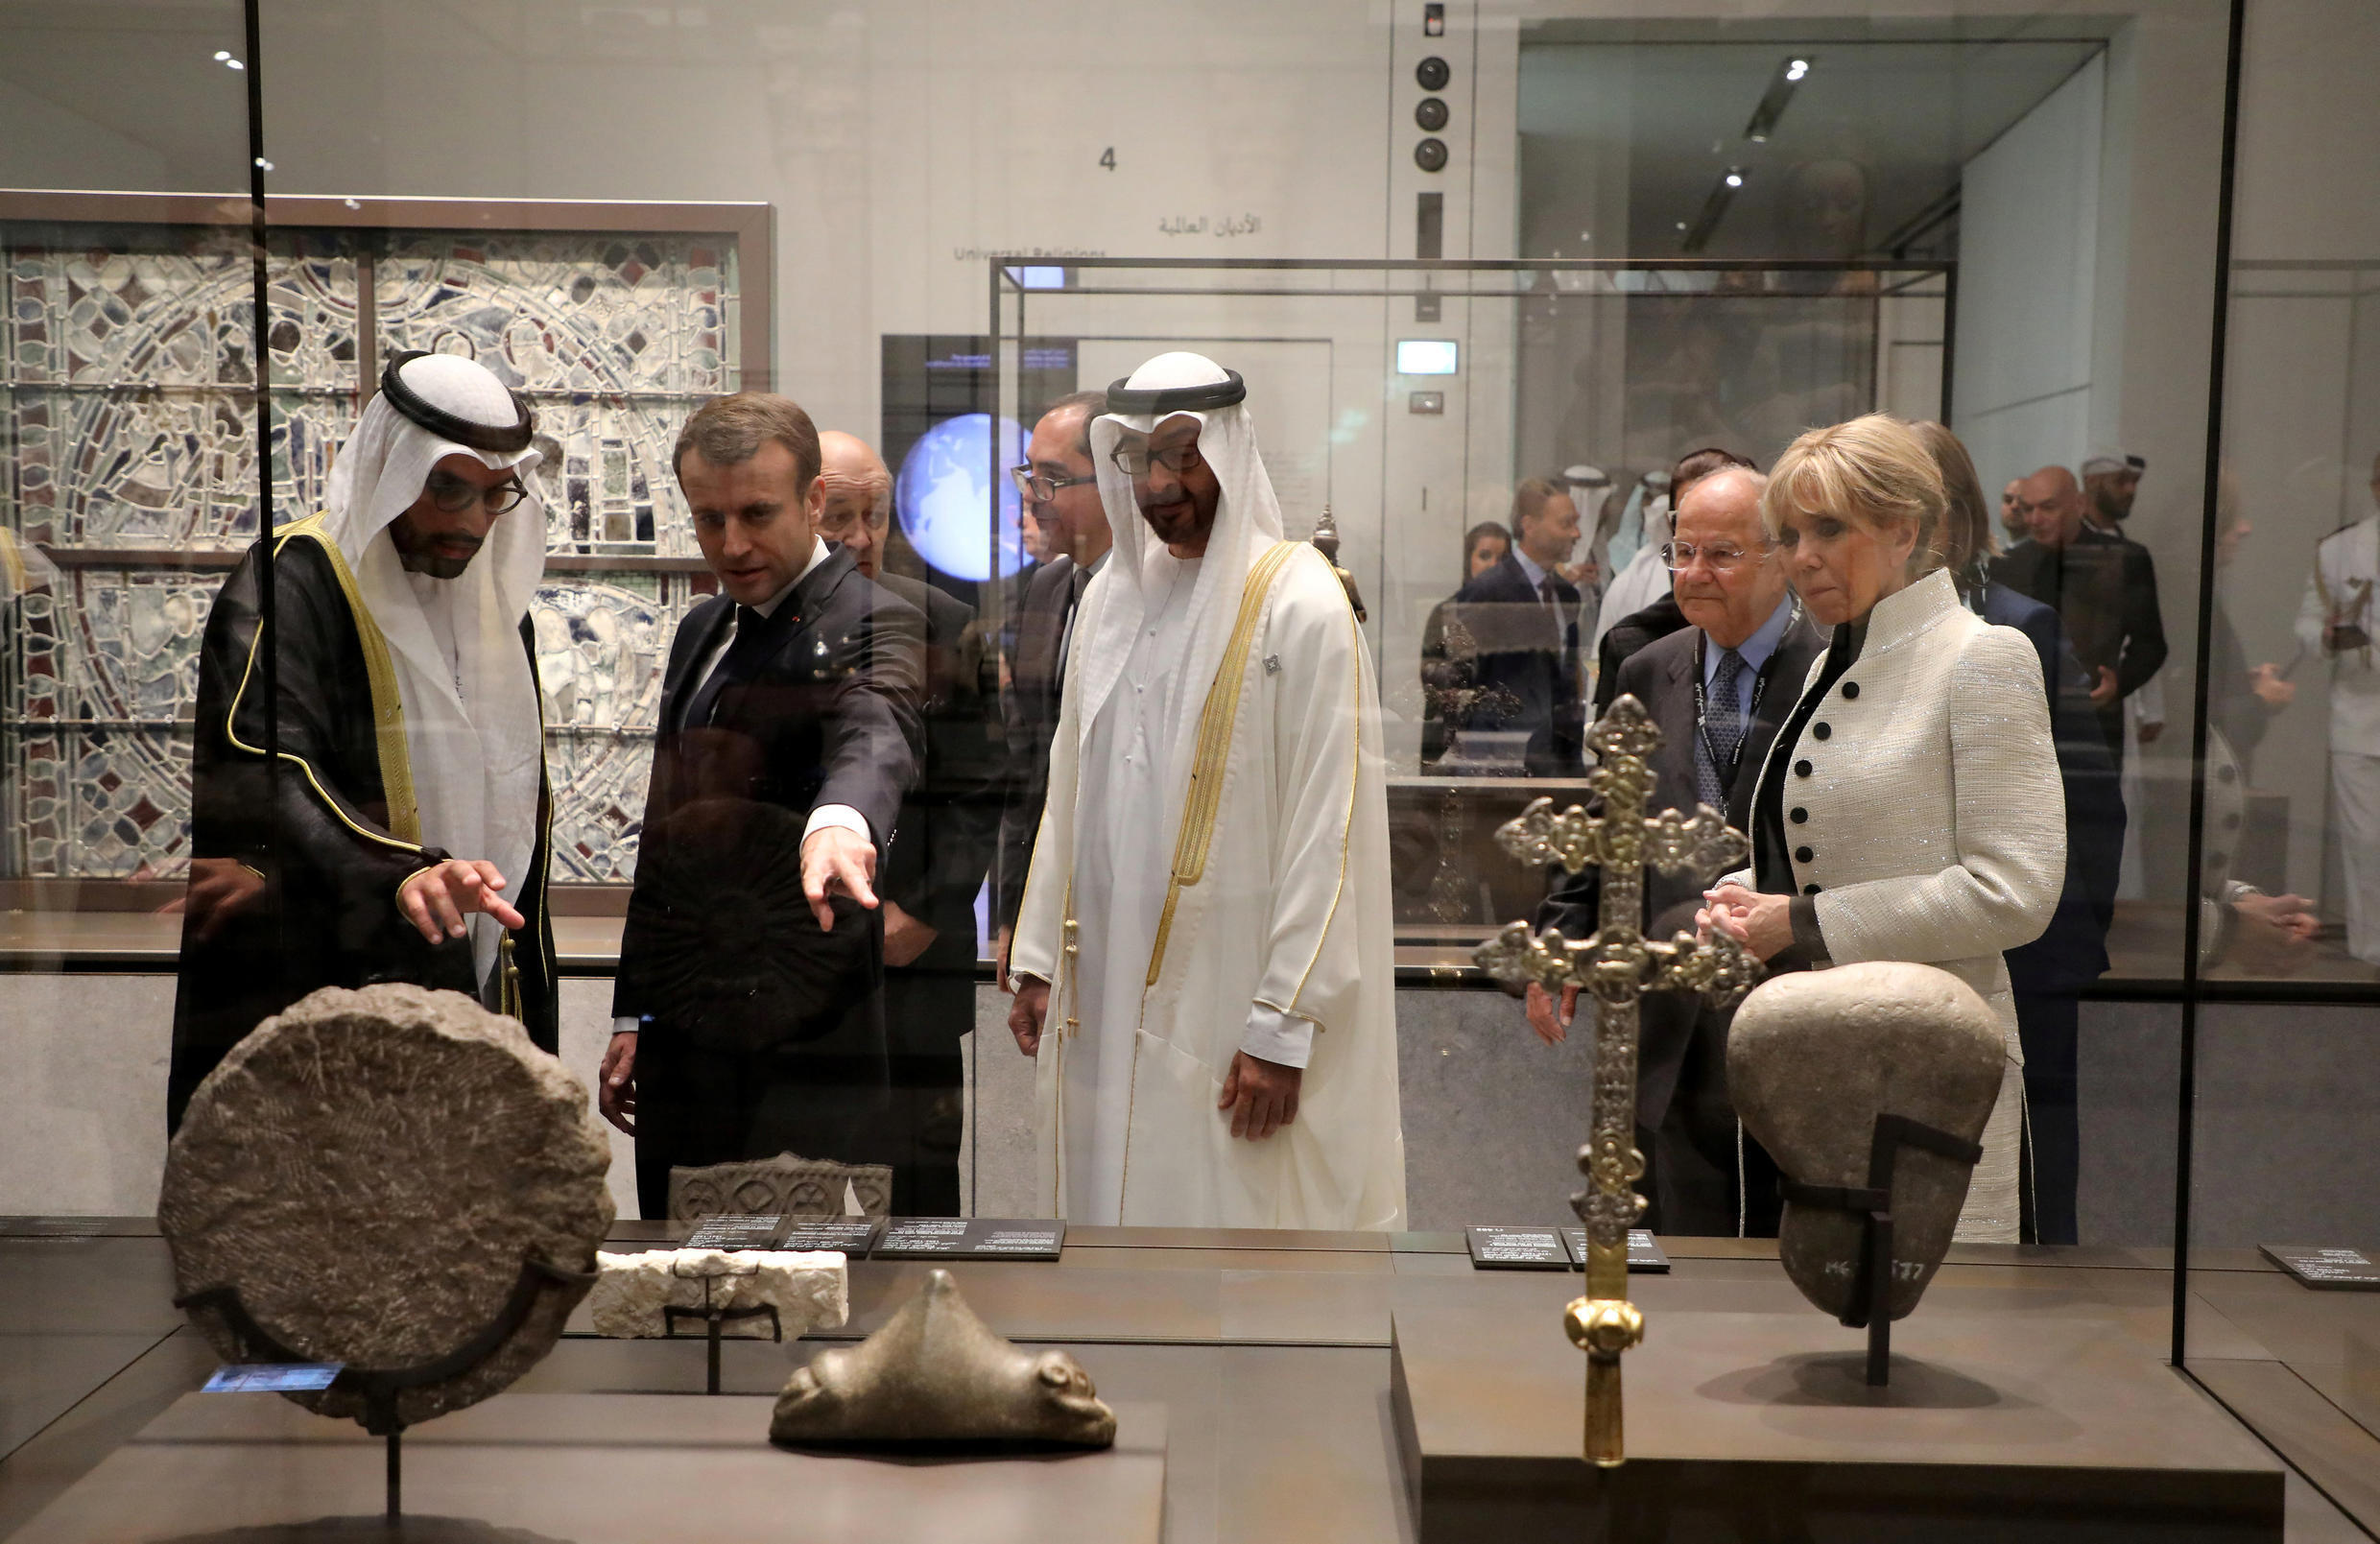 French President Emmanuel Macron (2ndL) and his wife Brigitte Macron (R) look at a piece of art as they visit the Louvre Abu Dhabi Museum during its inauguration in Abu Dhabi, UAE, November 8, 2017.